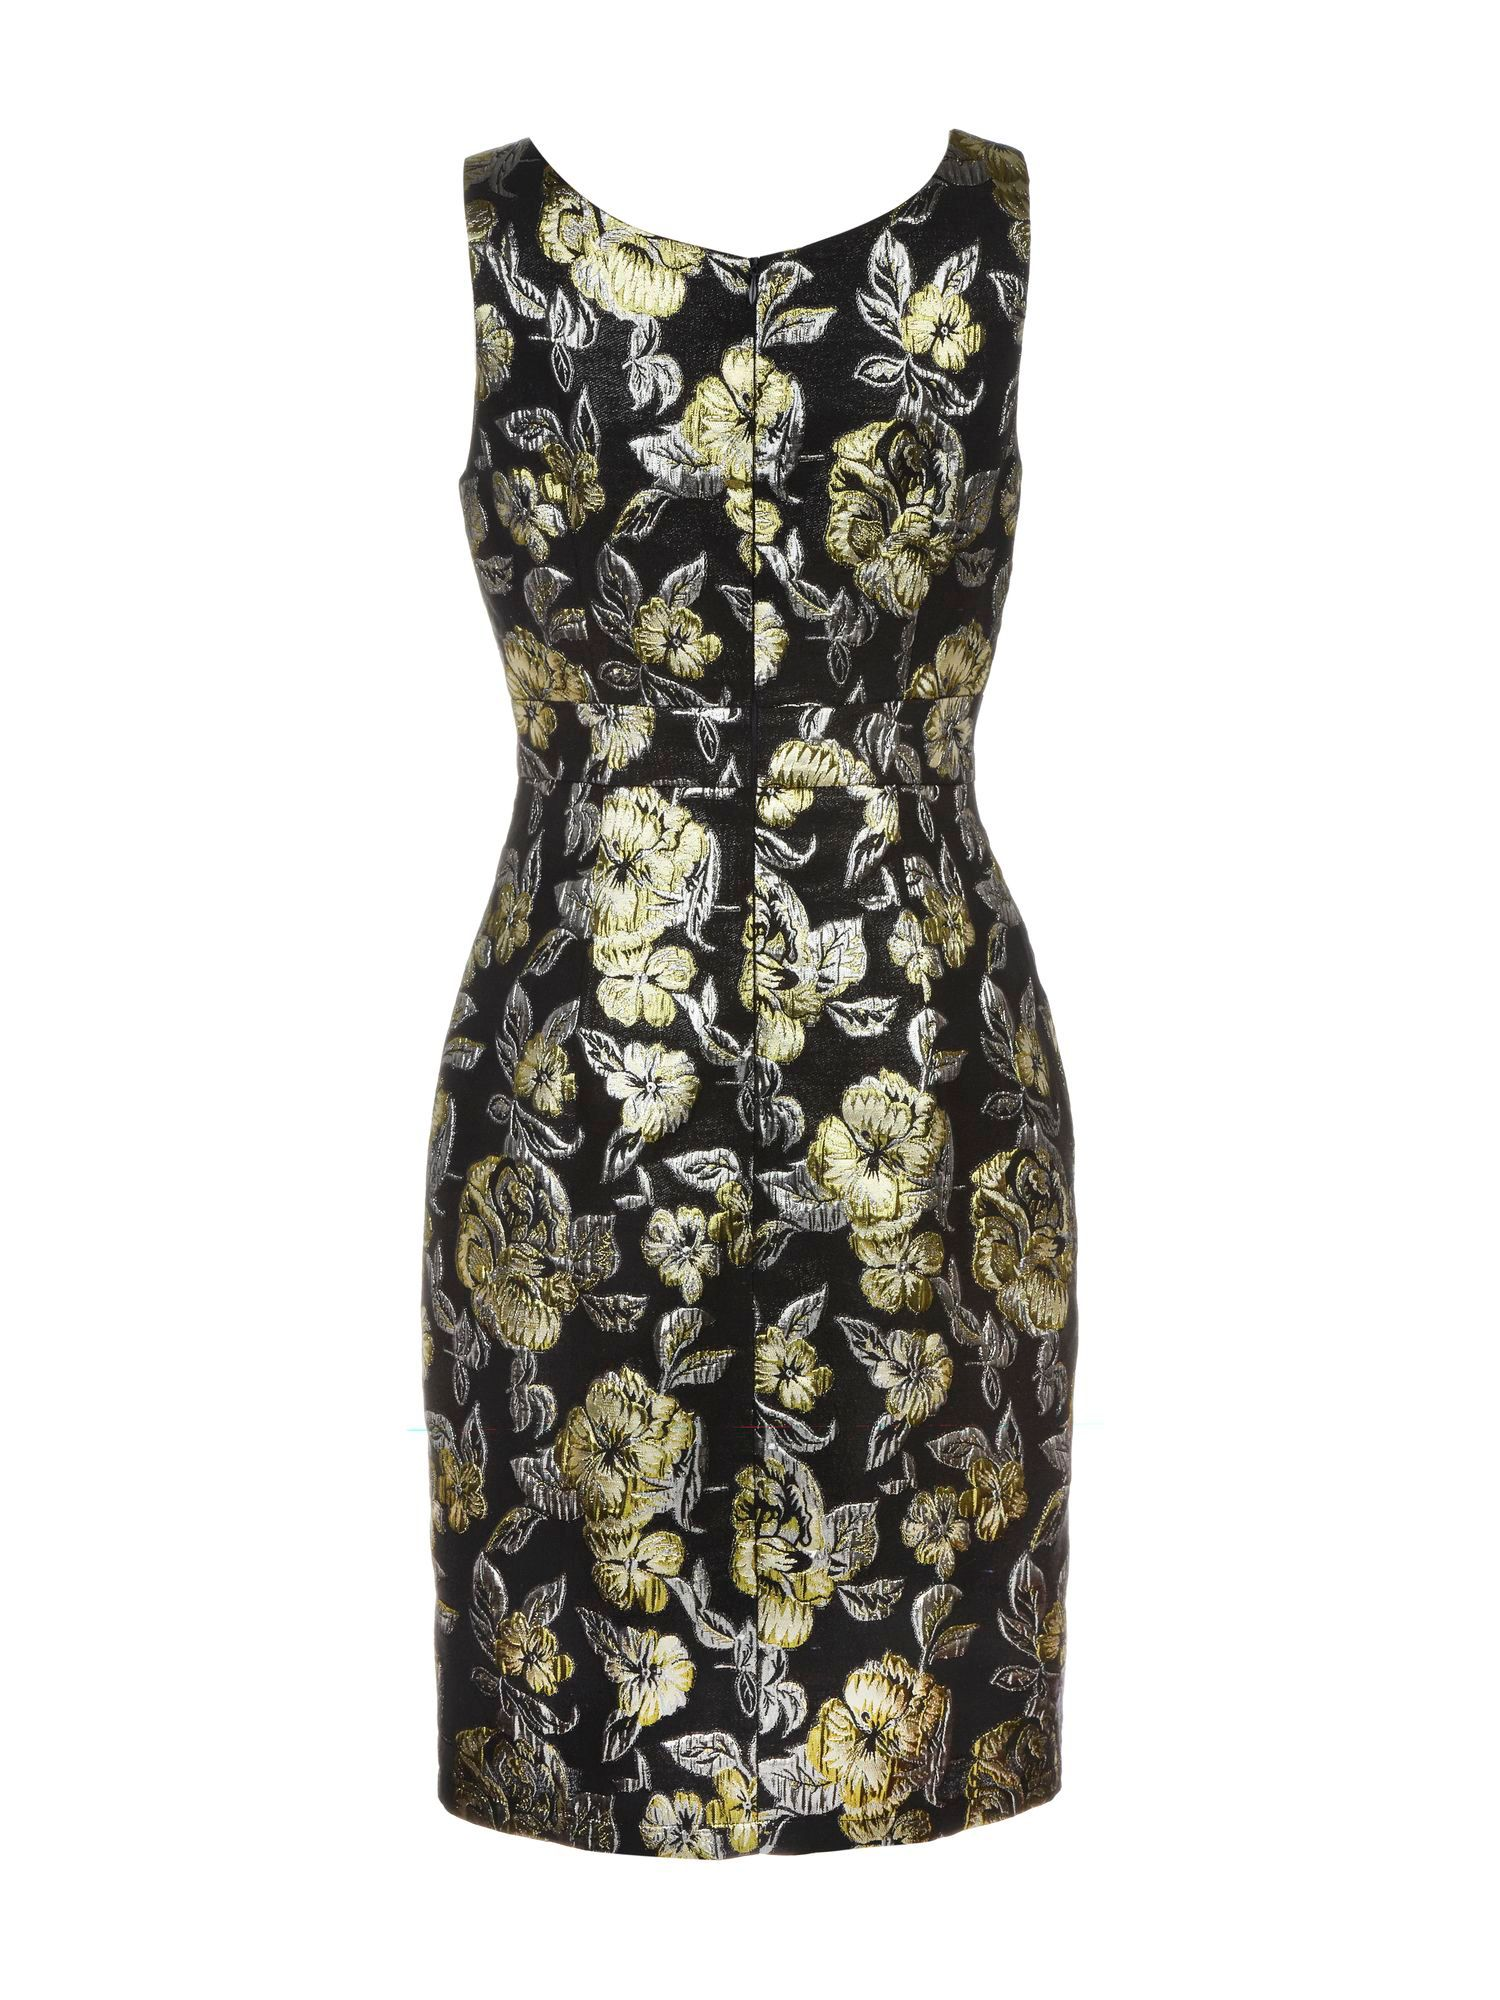 Brocade flower dress